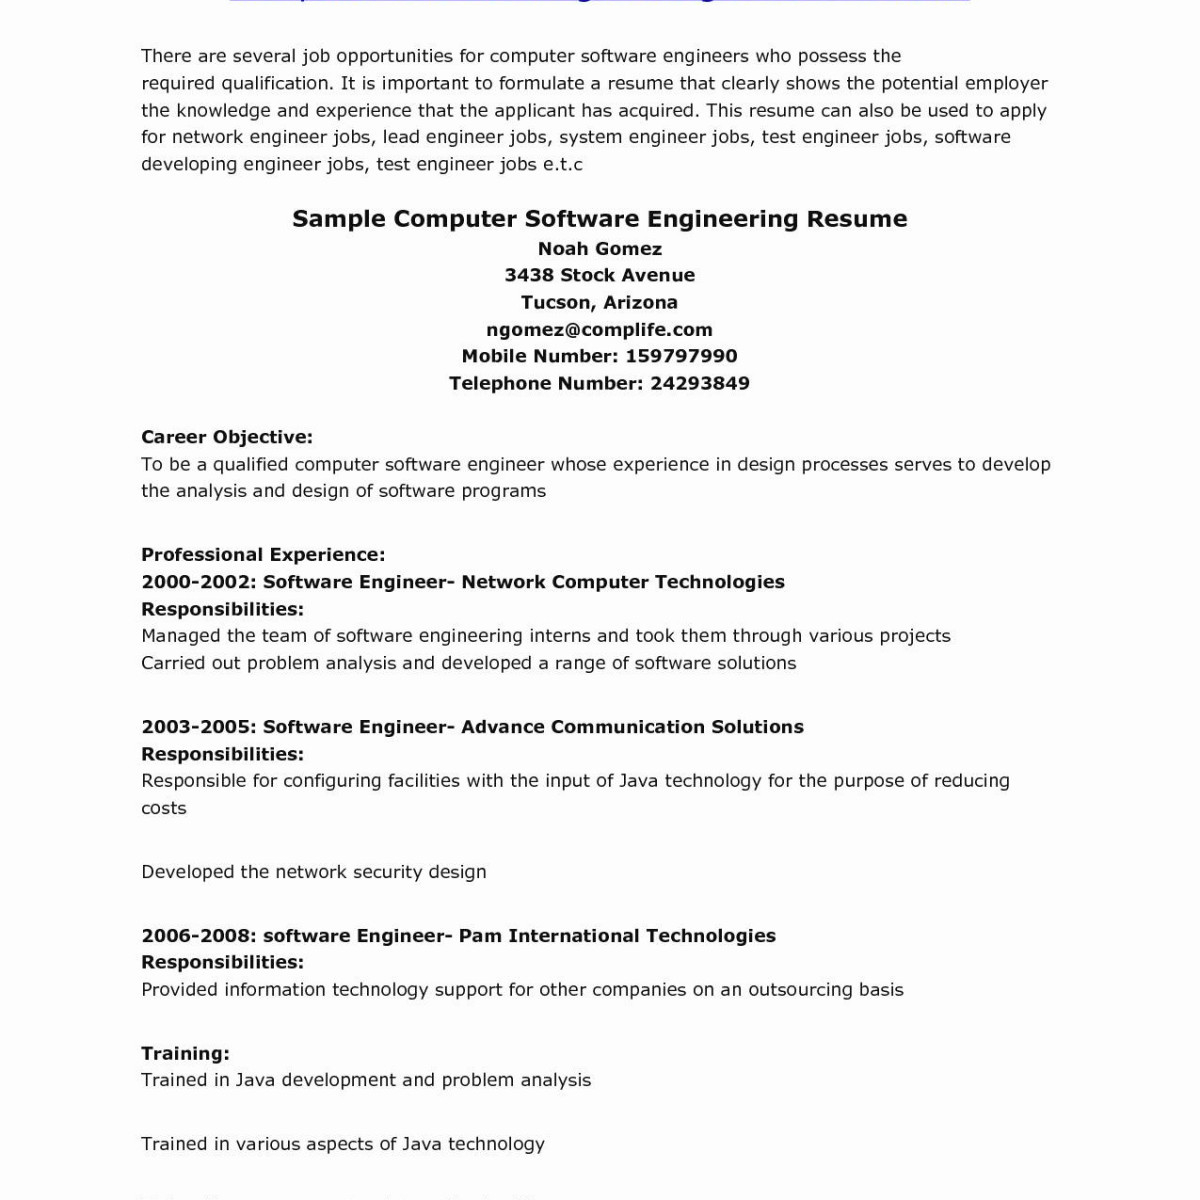 Computer Engineering Resume Template - Resume Document Cute Resume format Doc Unique Fresh Resume Template